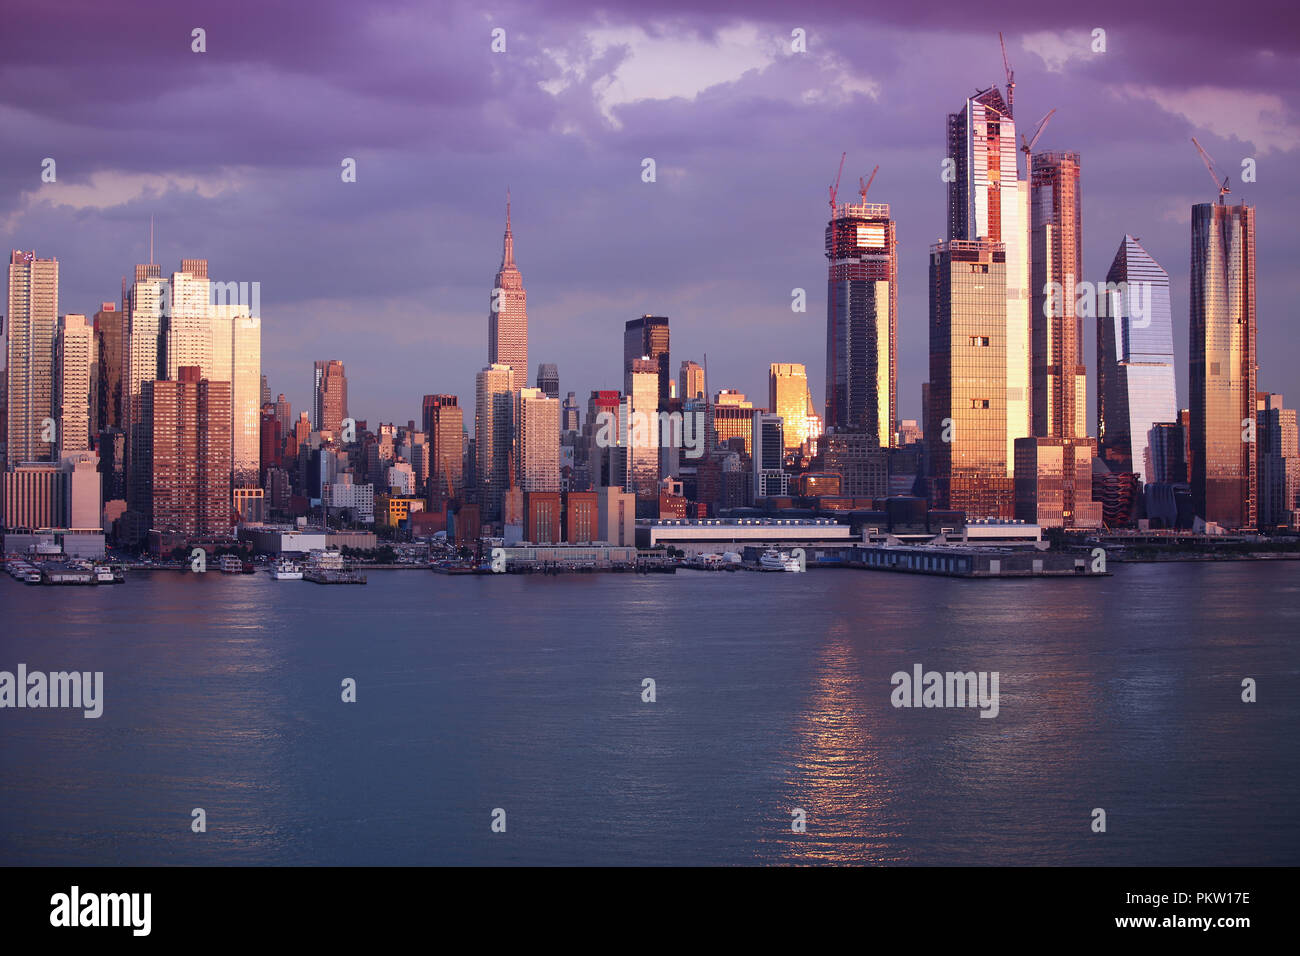 Manhattan Skyline from NewJersey, New York City - Stock Image